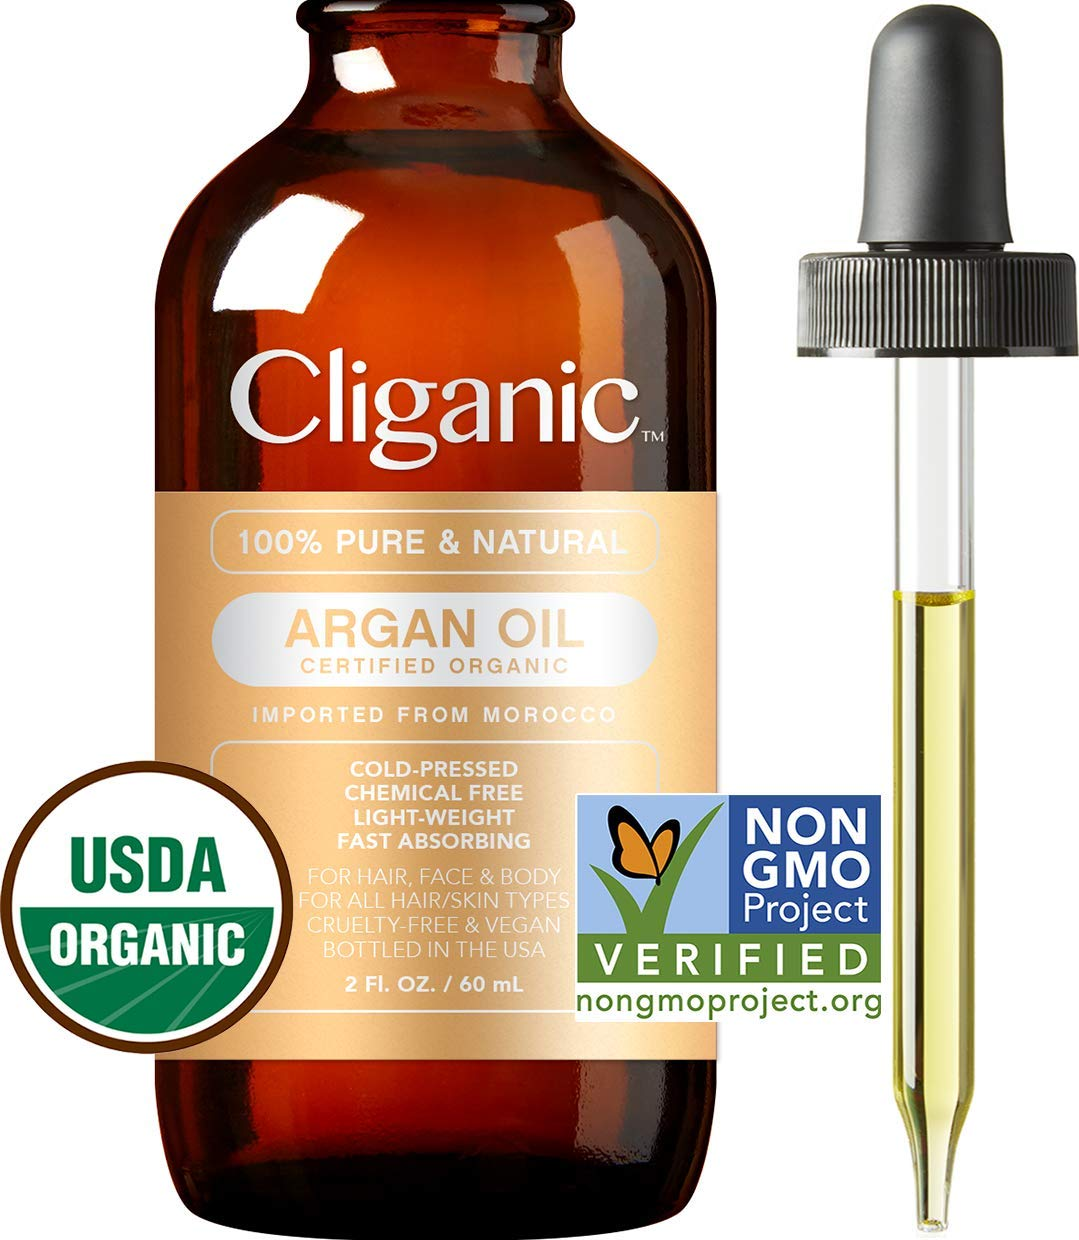 cliganic argan oil review